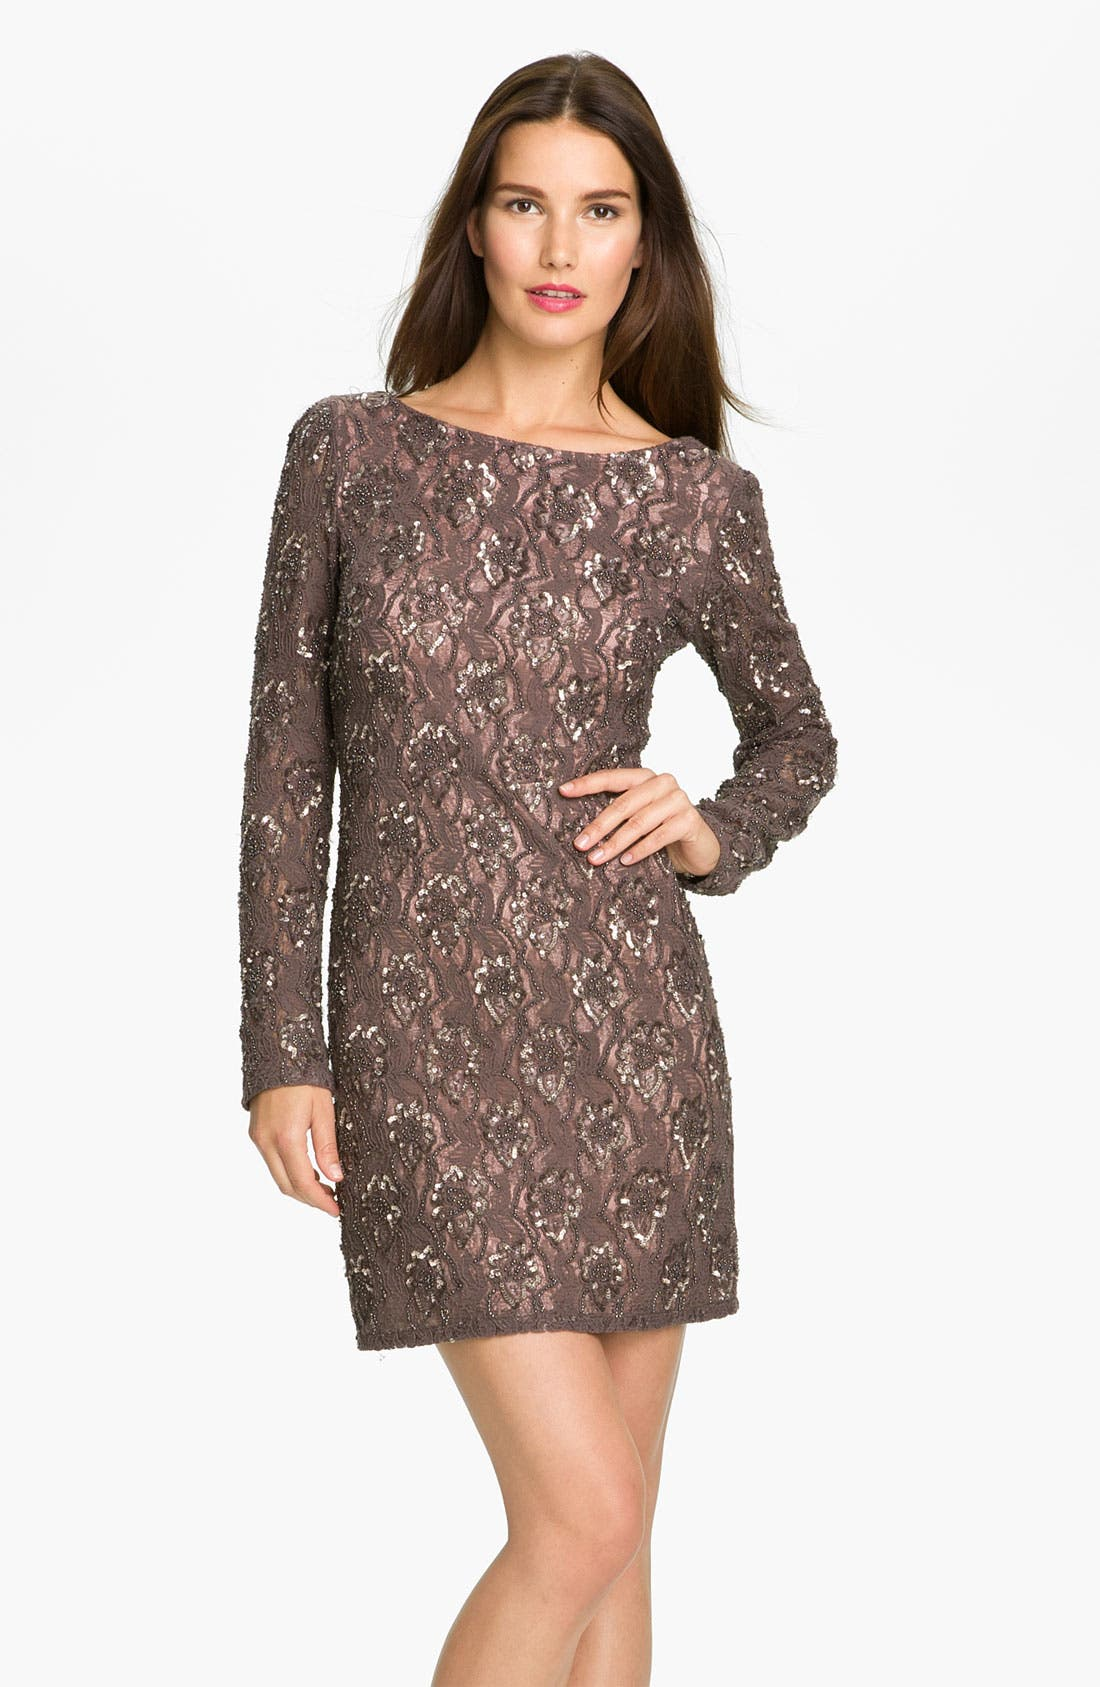 Alternate Image 1 Selected - Aidan Mattox V-Back Embellished Lace Sheath Dress